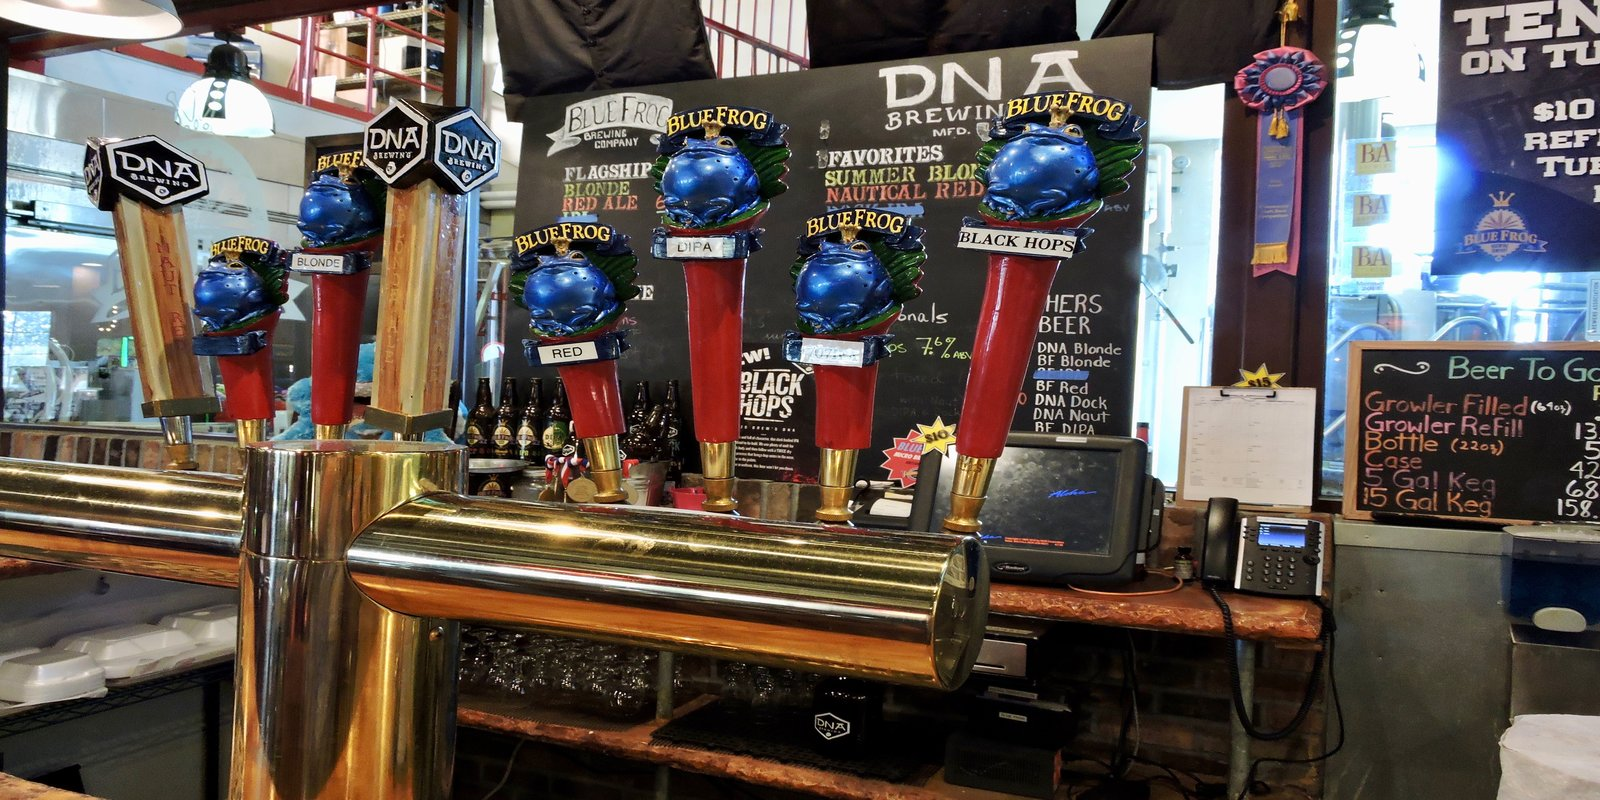 Image of DNA/Blue Frog Brewery